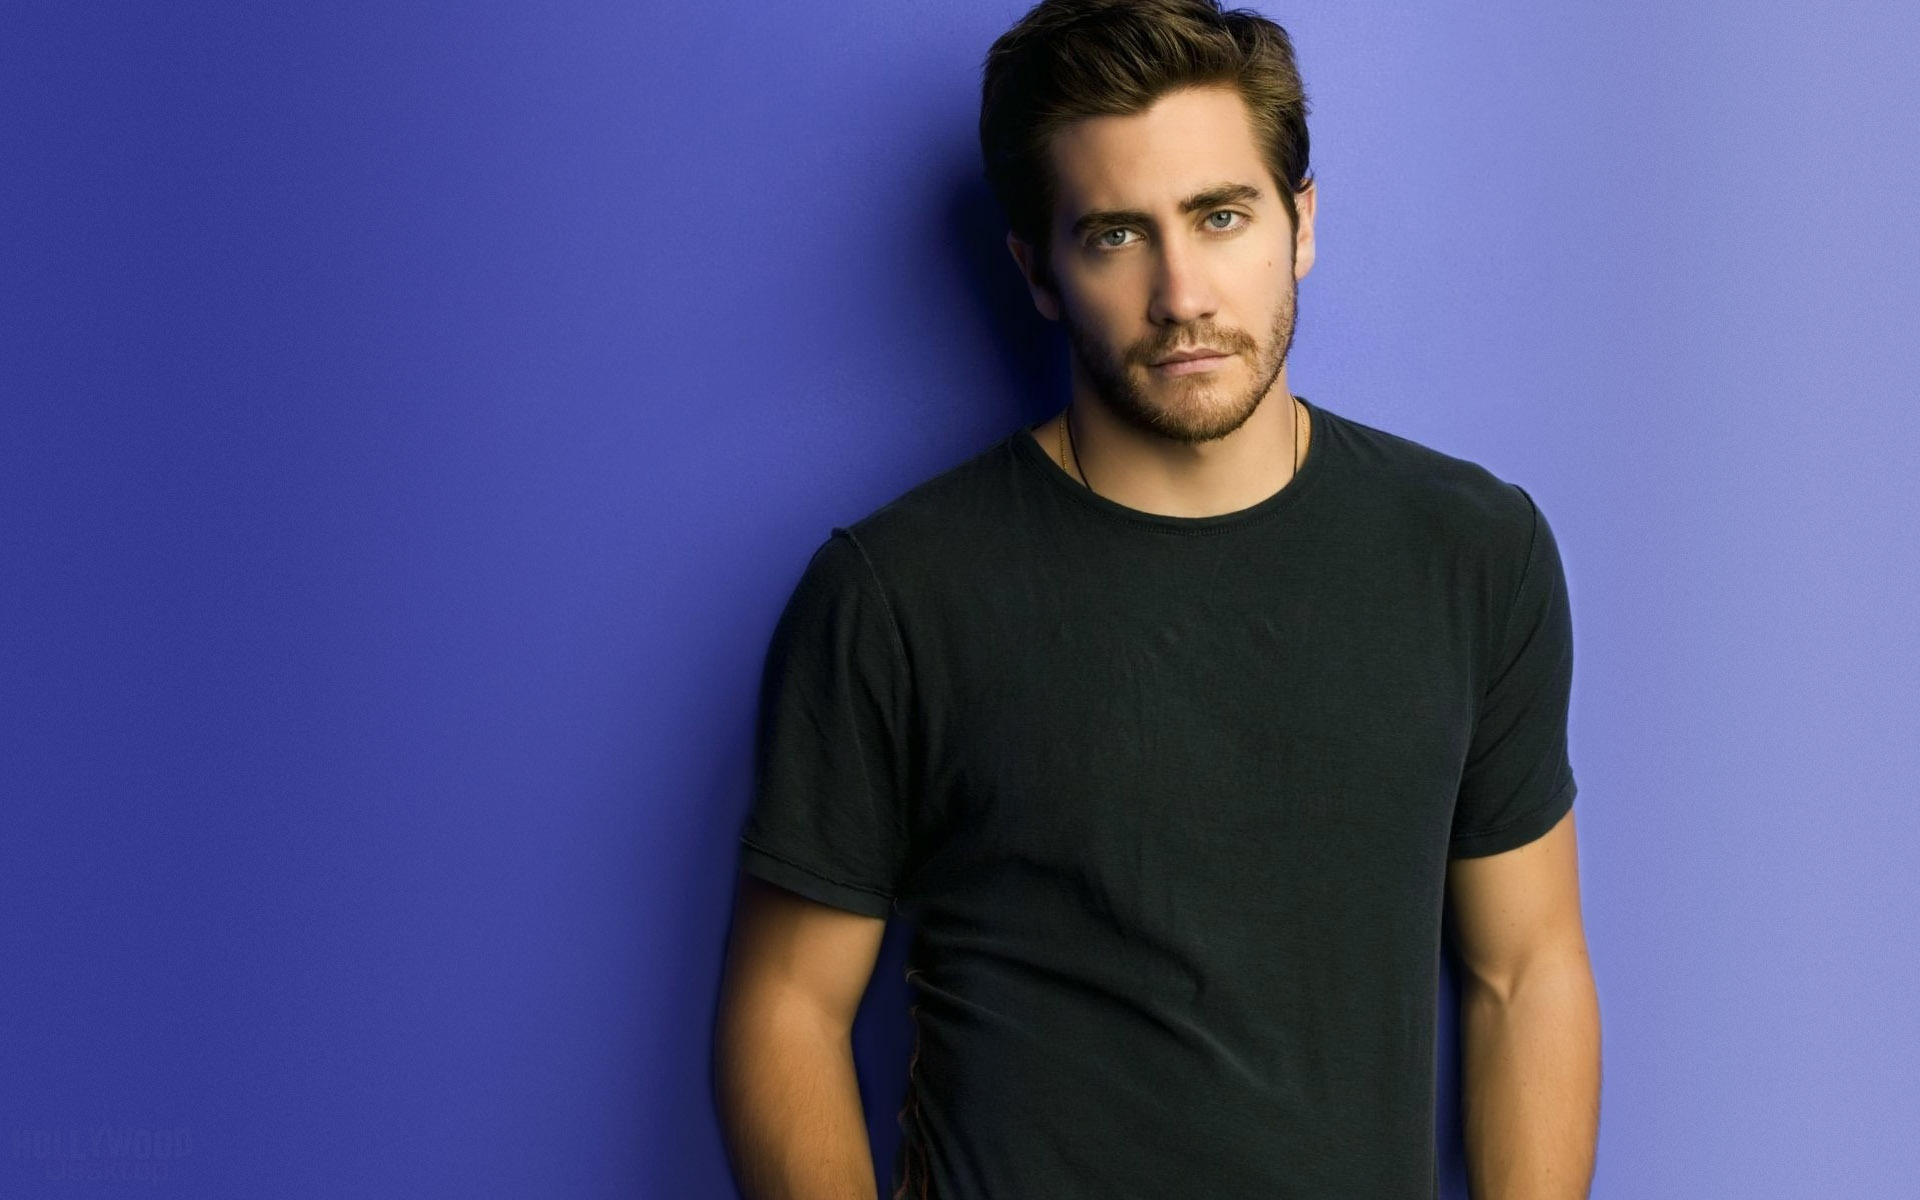 Jake gyllenh HD Wallpaper Background Images 1920x1200